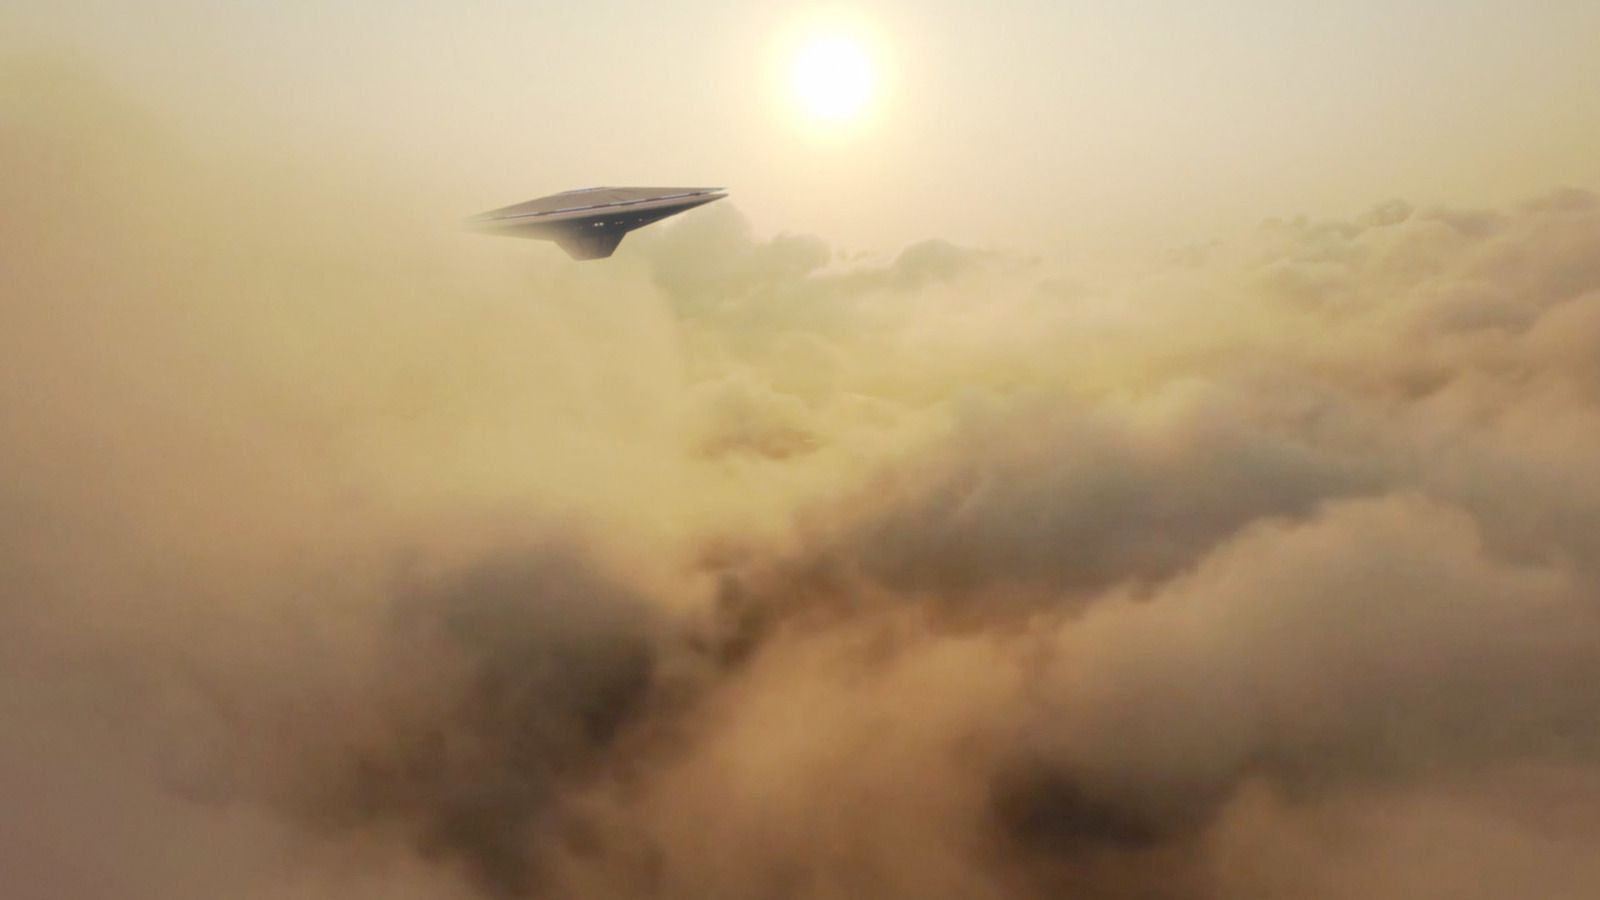 👽 Strange UFO Spotted in the Clouds by Drone (CGI)